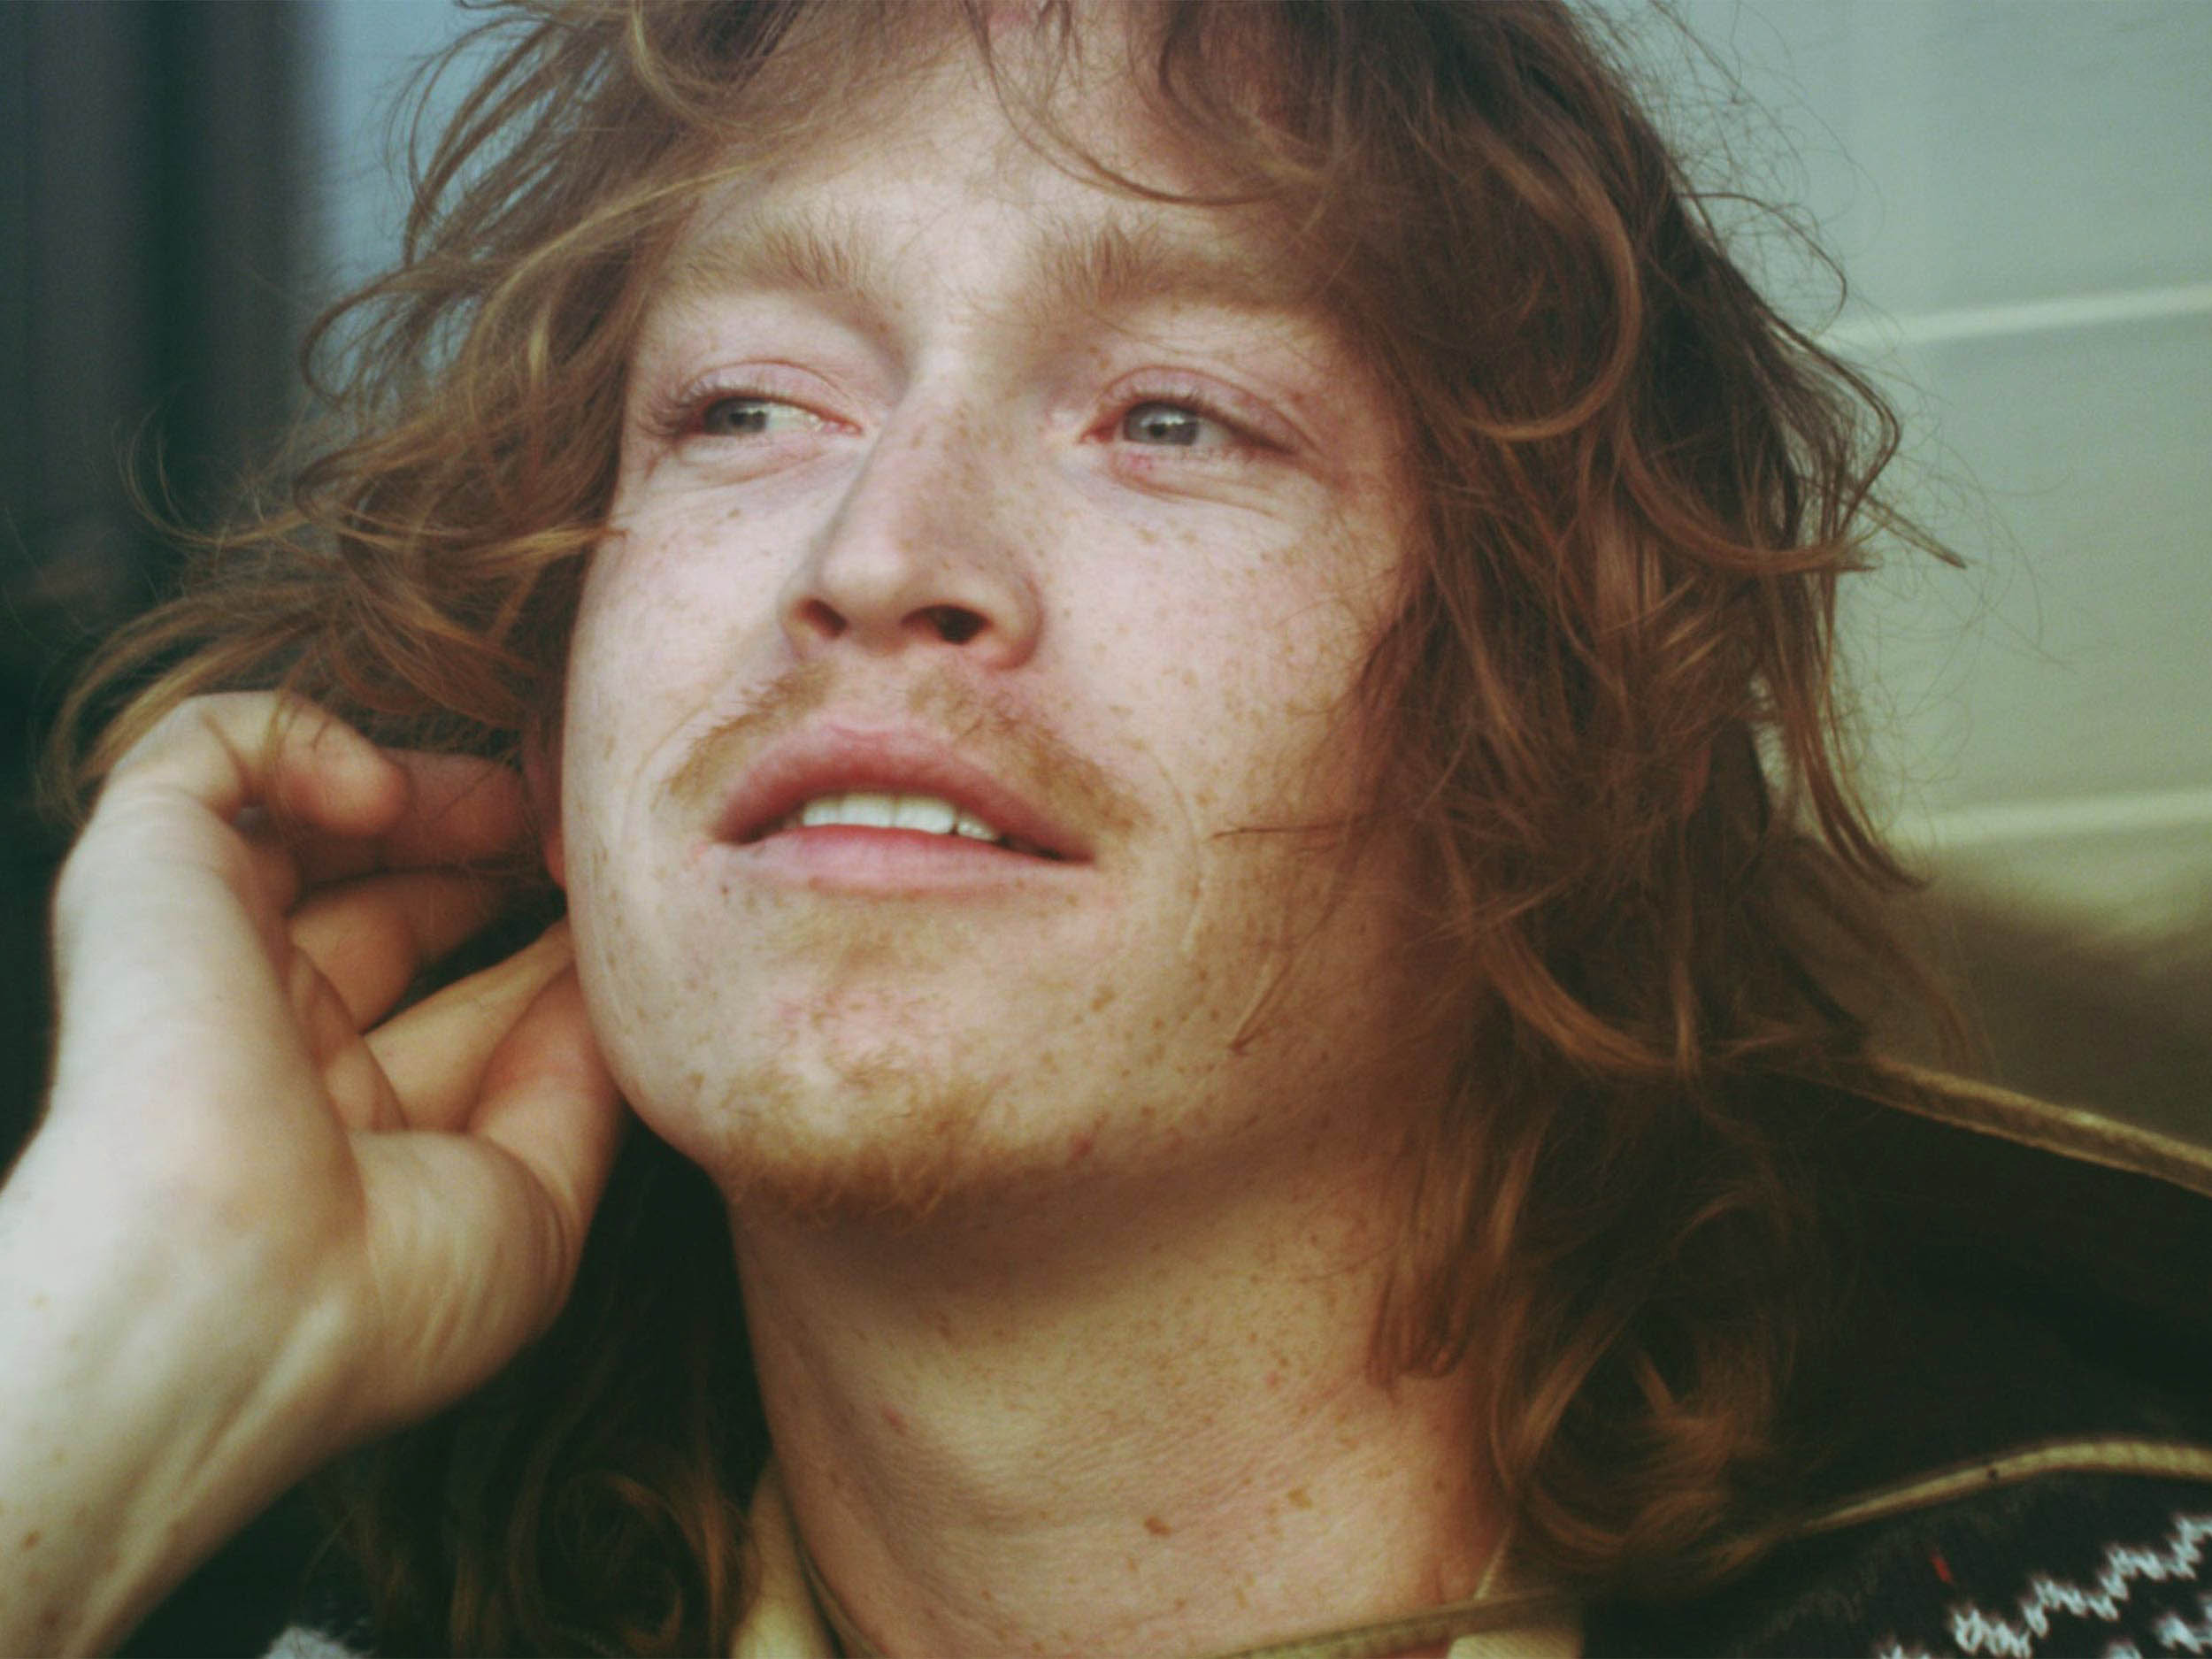 From his family home in Texas, Caleb Landry Jones takes us on a trip into another dimension